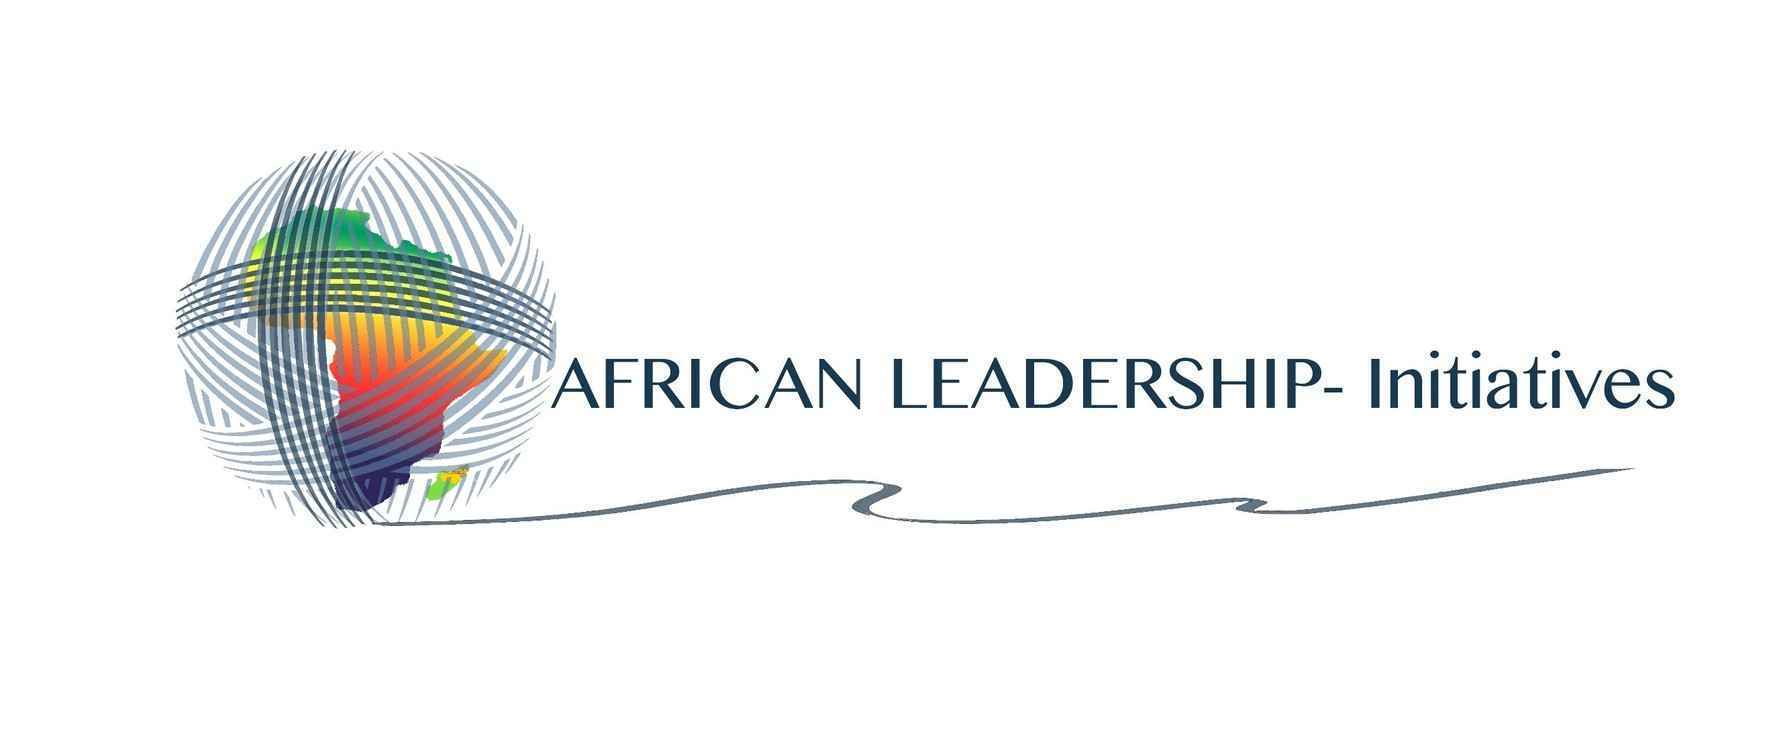 Help Develop More African Christian Leaders image